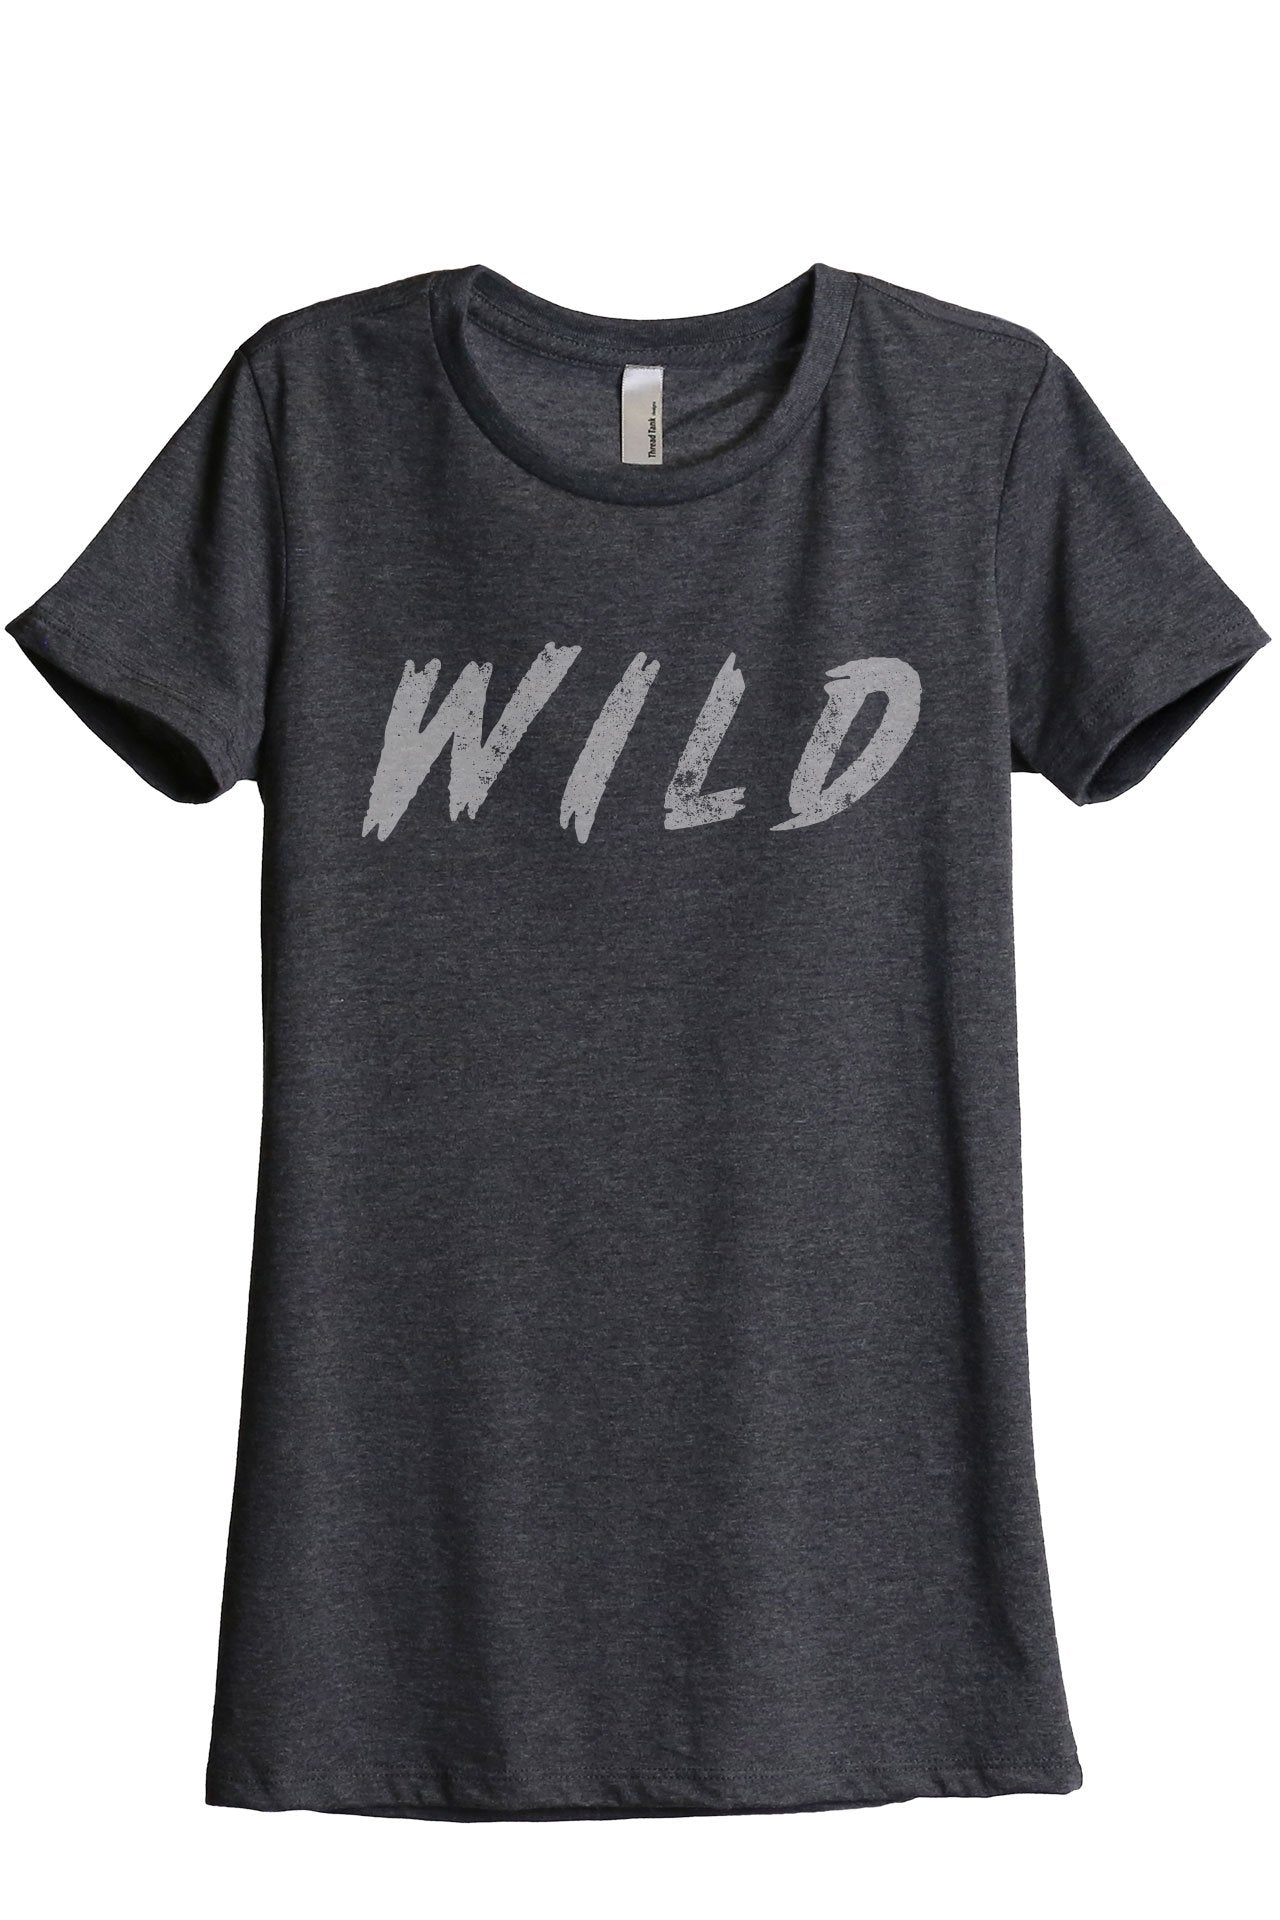 Wild Women's Relaxed Crewneck T-Shirt Top Tee Charcoal Grey